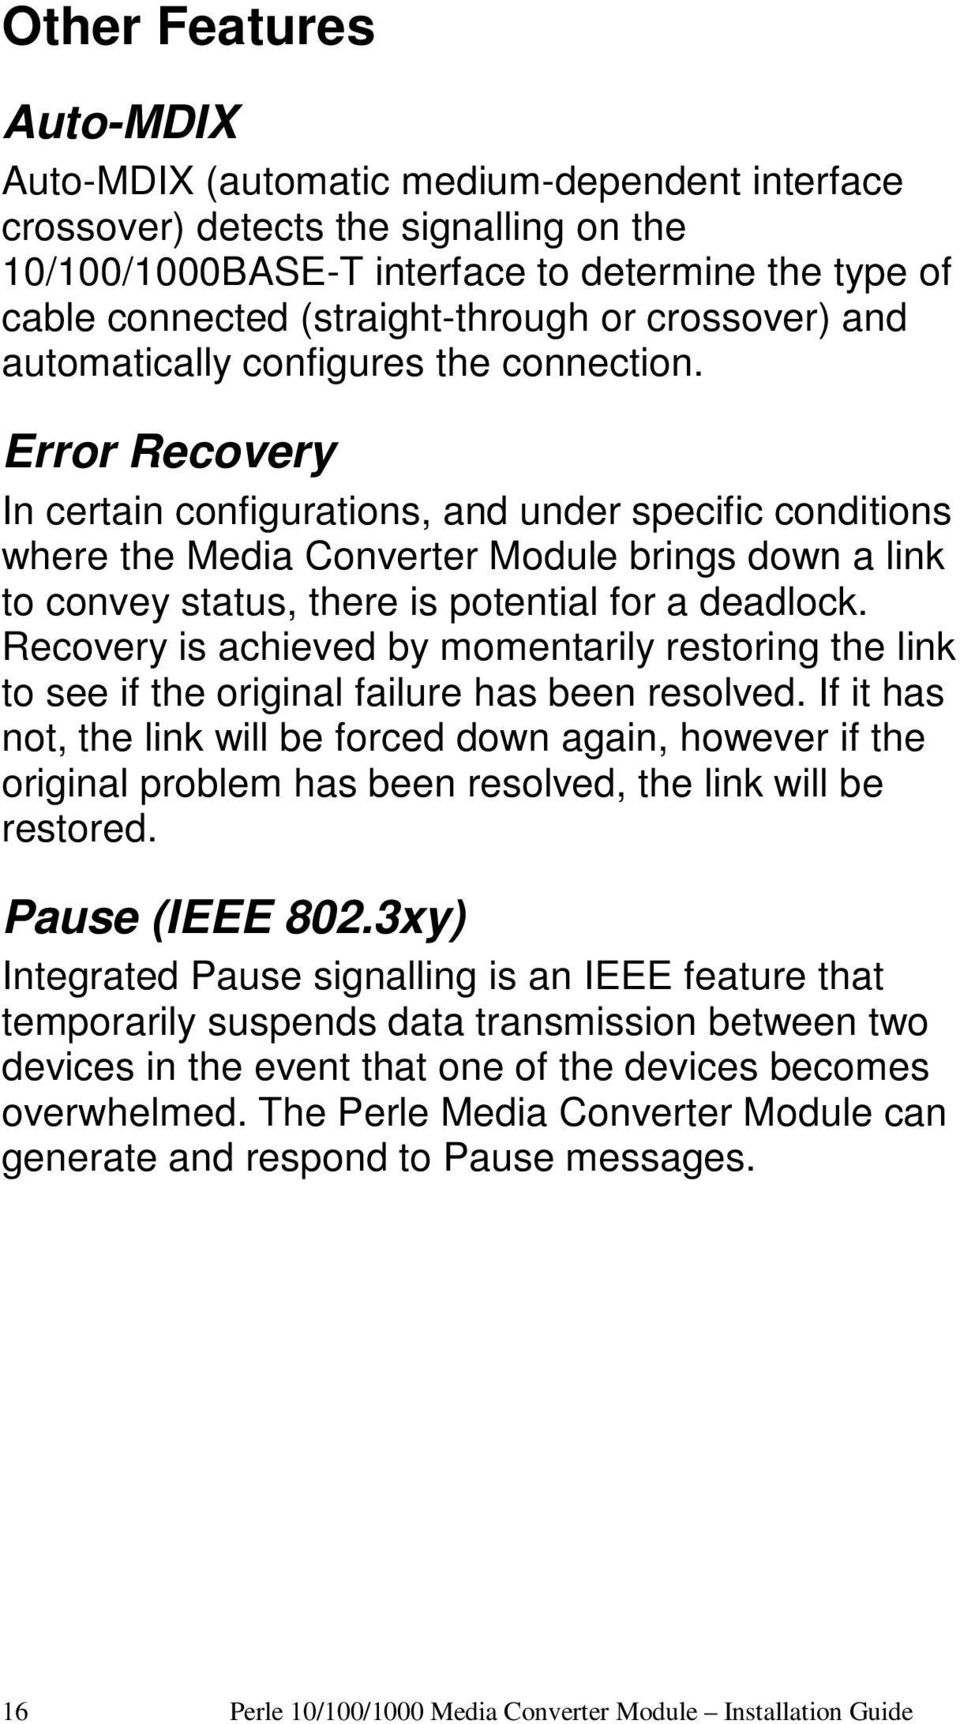 Error Recovery In certain configurations, and under specific conditions where the Media Converter Module brings down a link to convey status, there is potential for a deadlock.